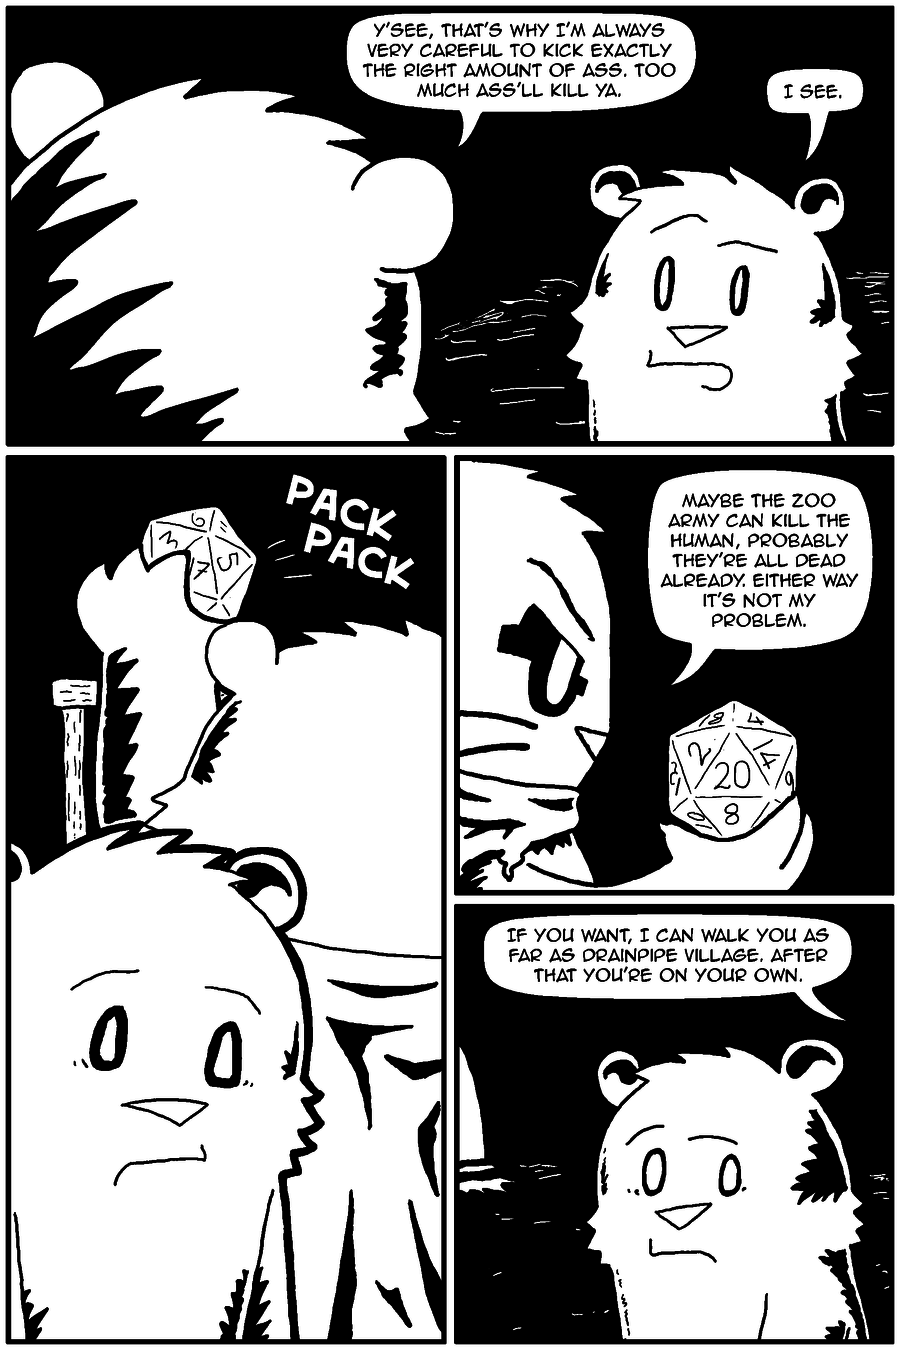 The Last Human Alive, Page 13